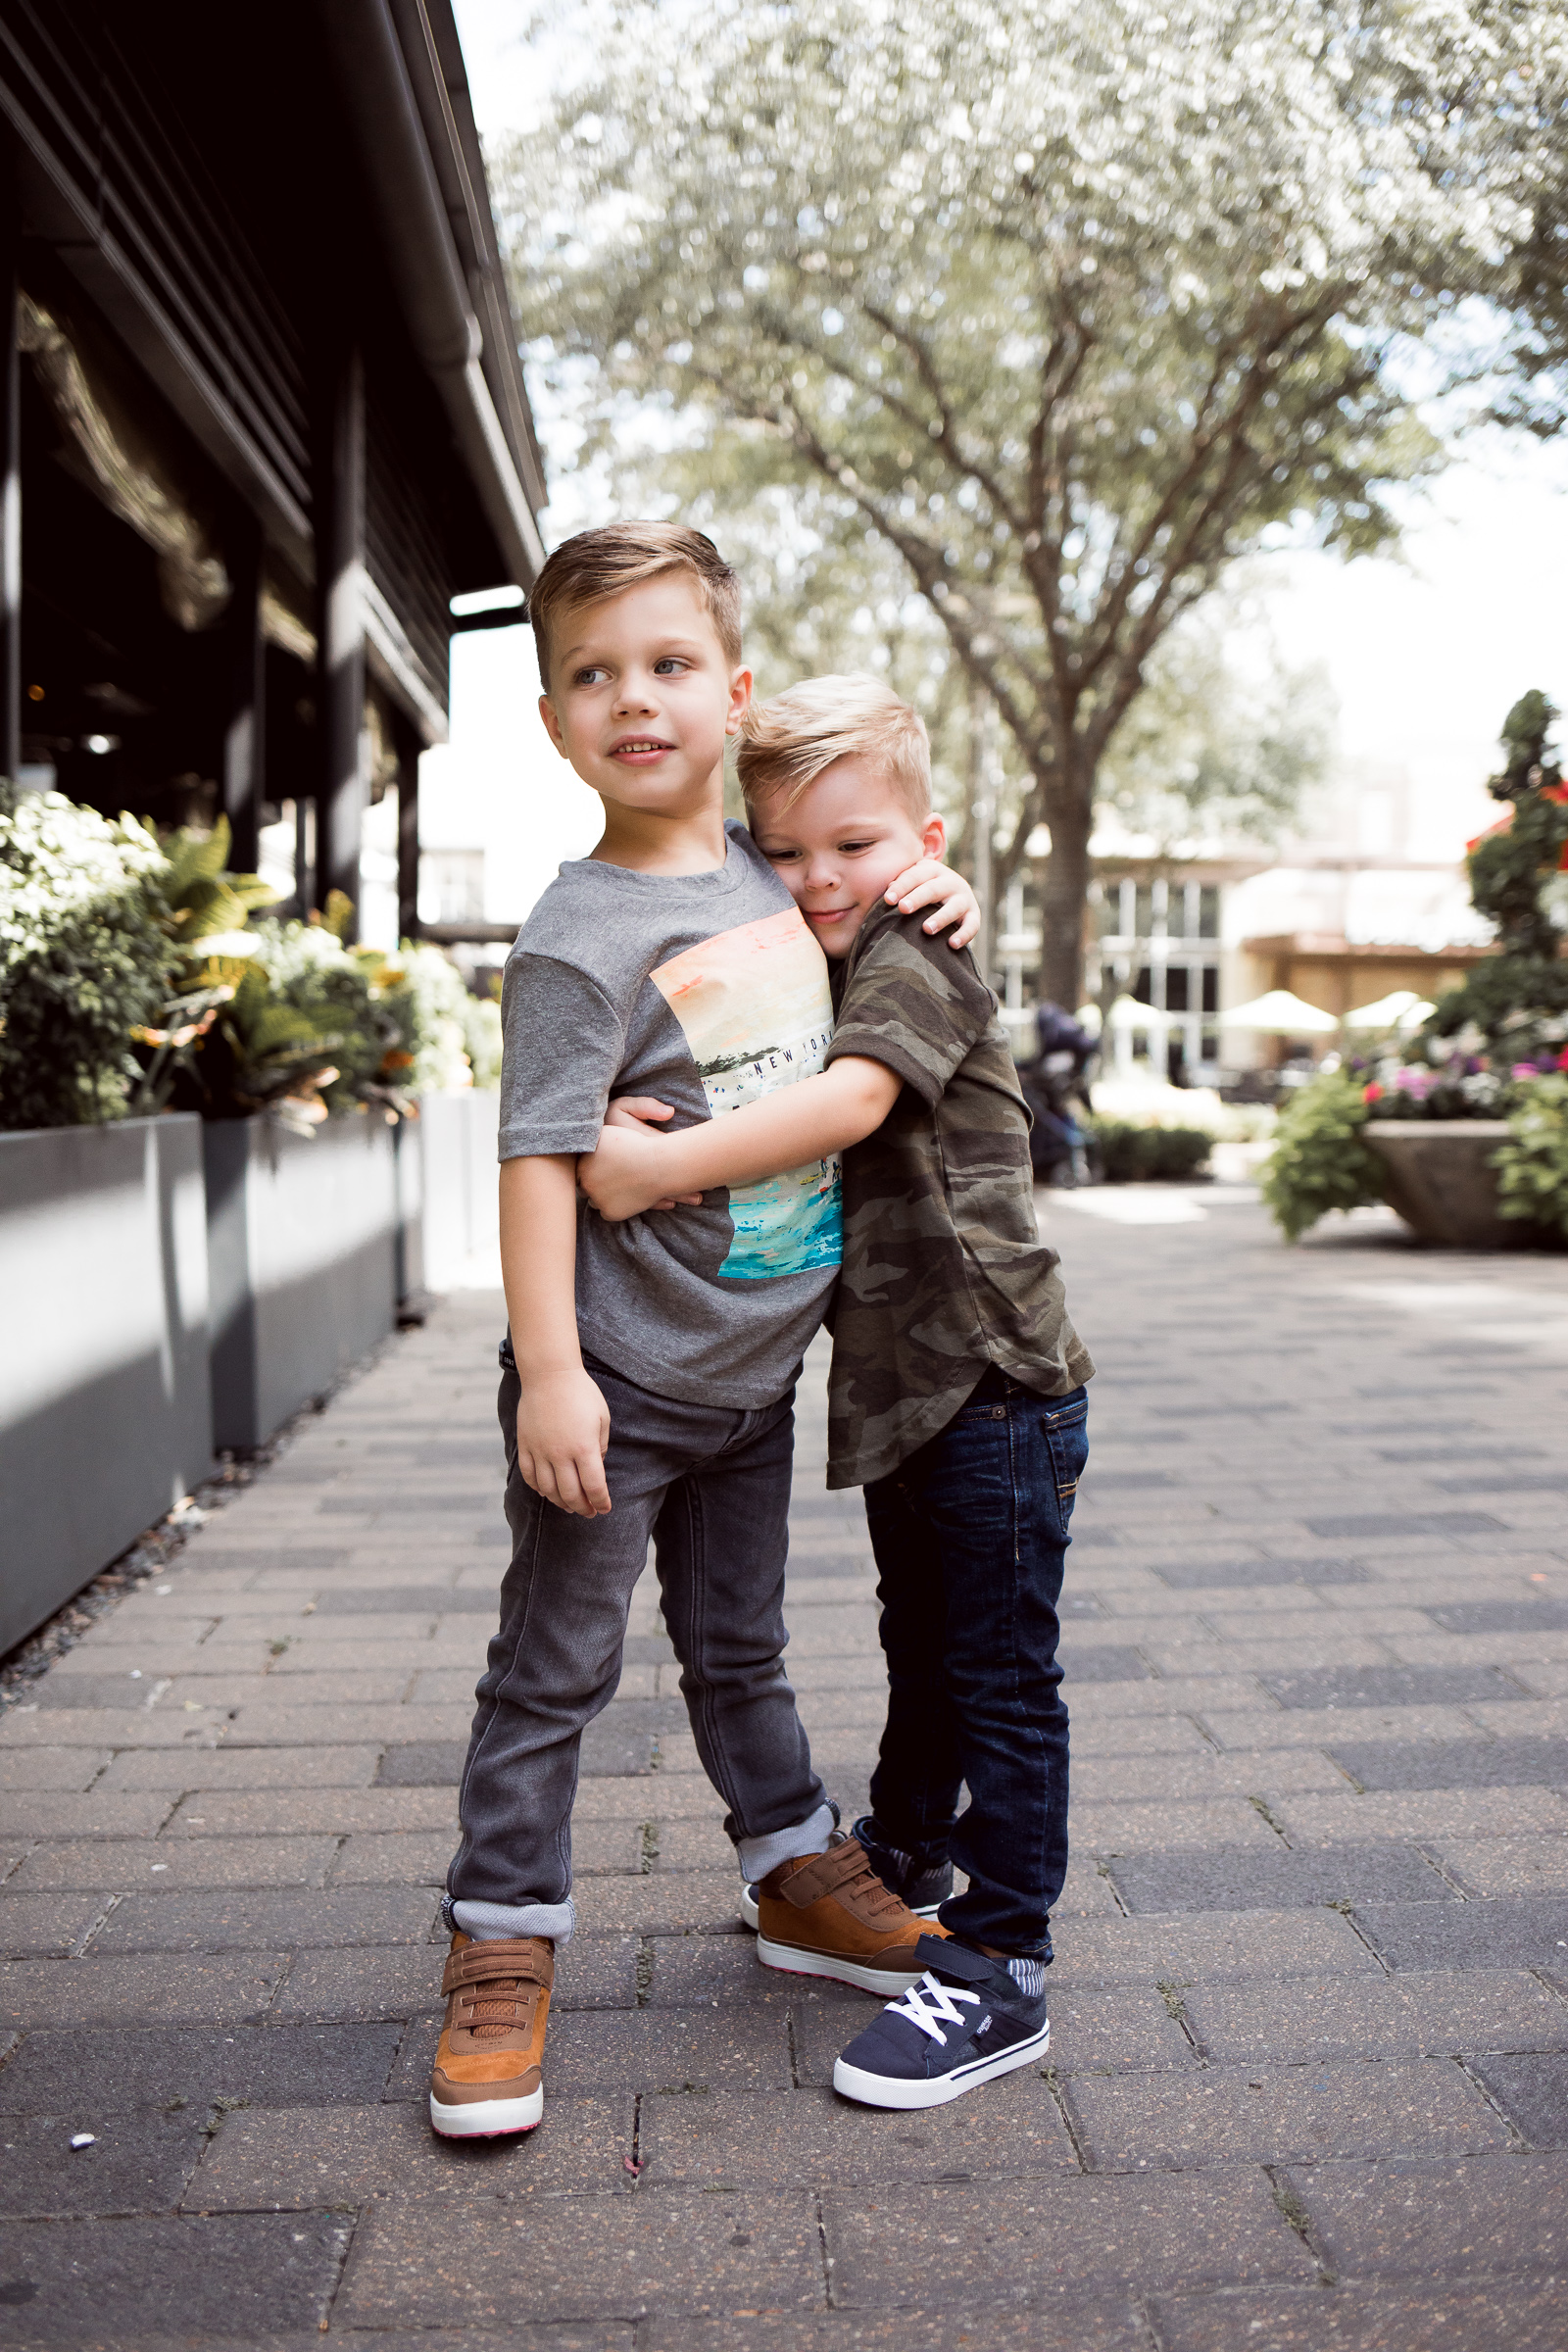 Houston fashion blogger Uptown with Elly Brown shares how to dress your kids in style with Abercrombie kids denim line for boys.